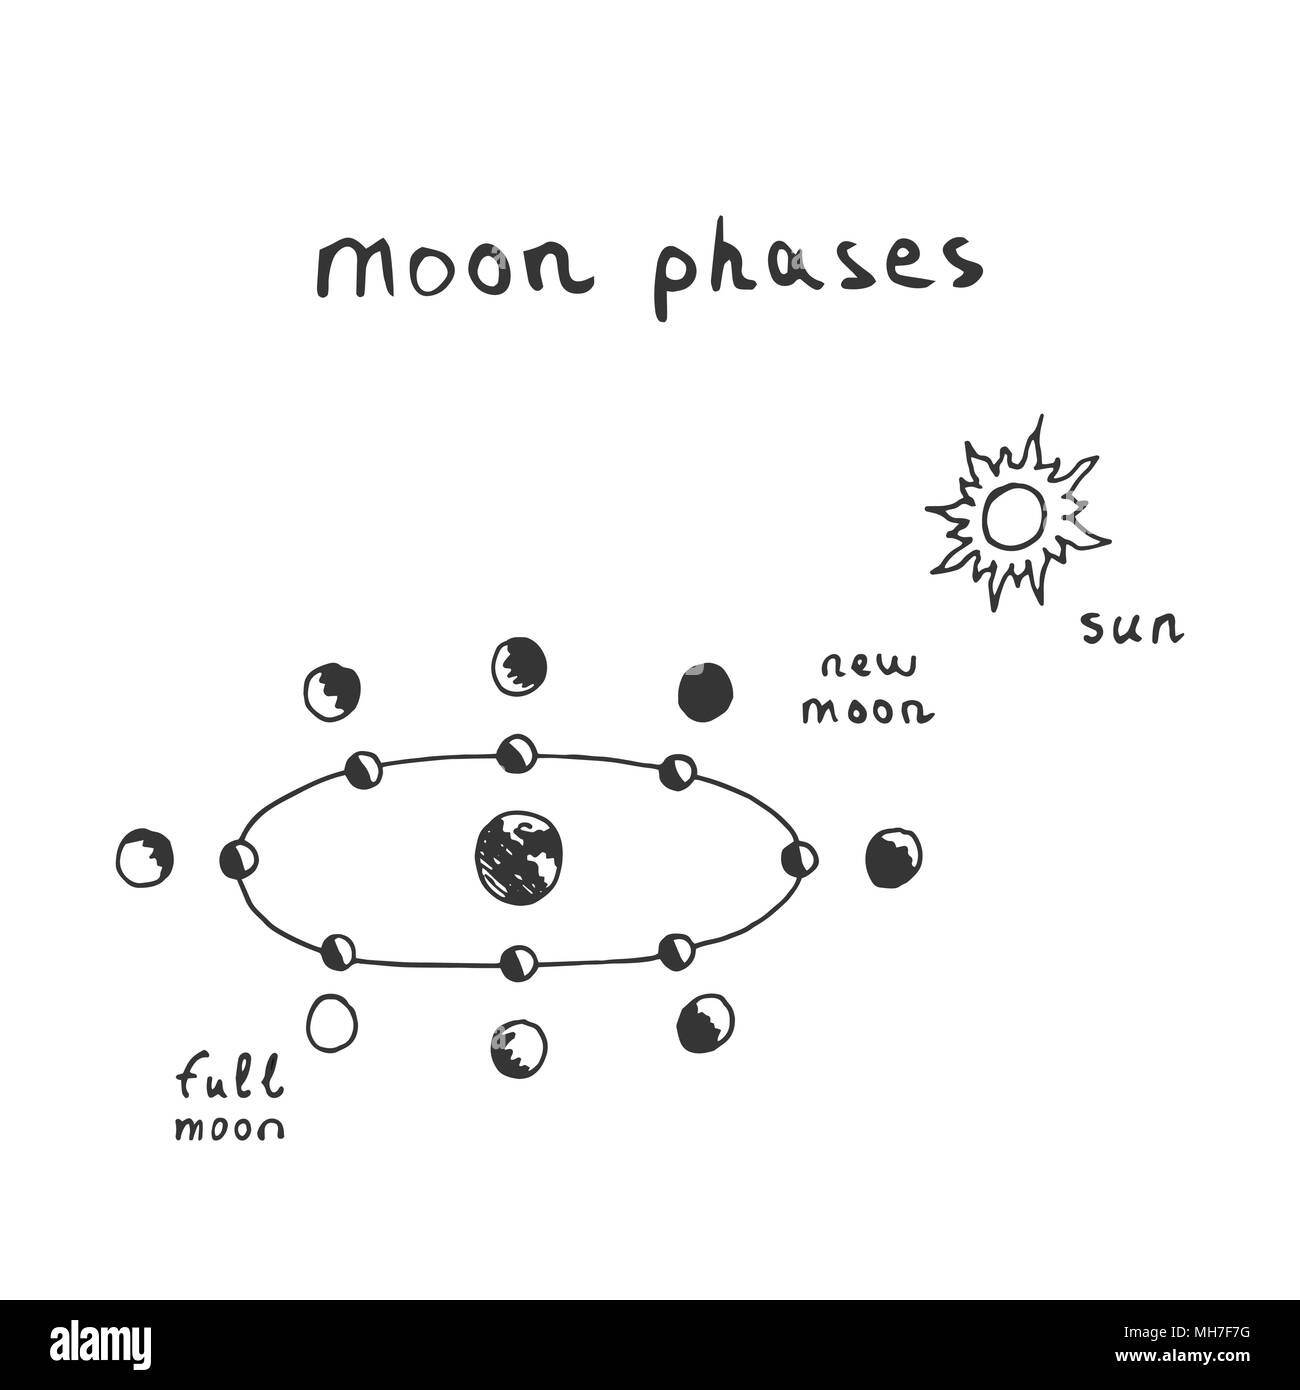 Vector hand drawn moon phases scheme. Sketch lunar phases - Stock Image